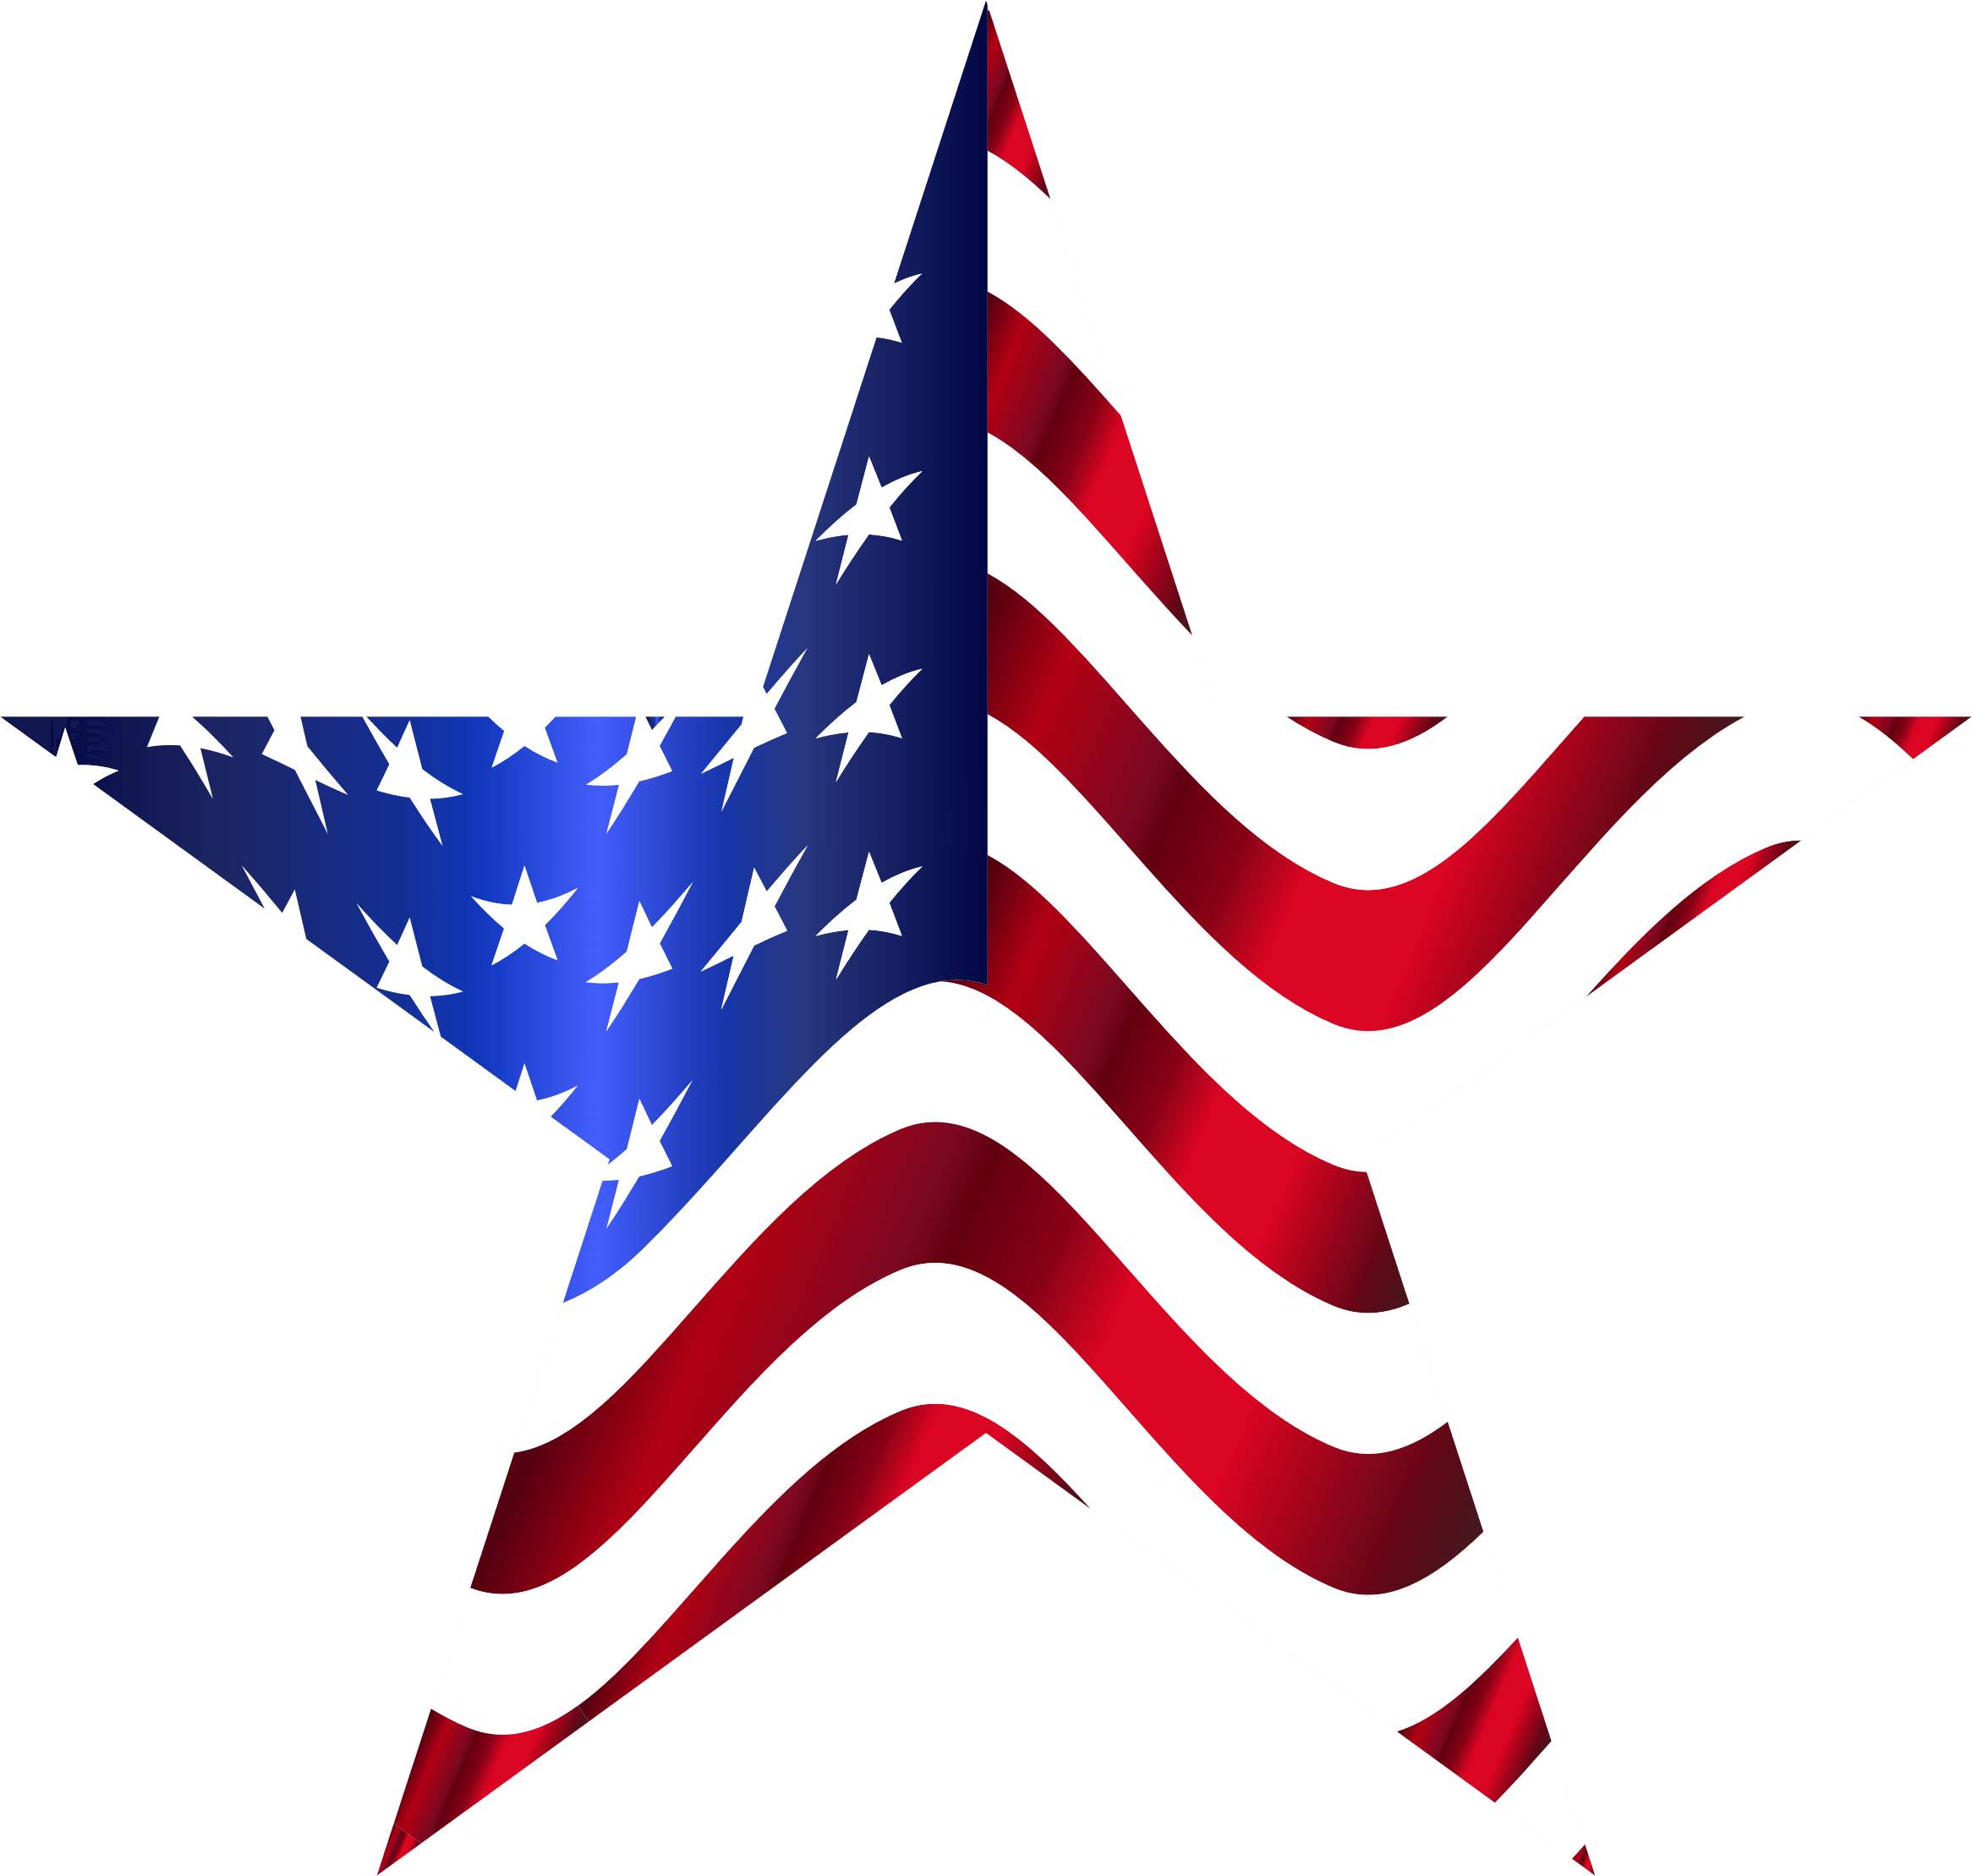 Flag Usa Png - ClipArt Best